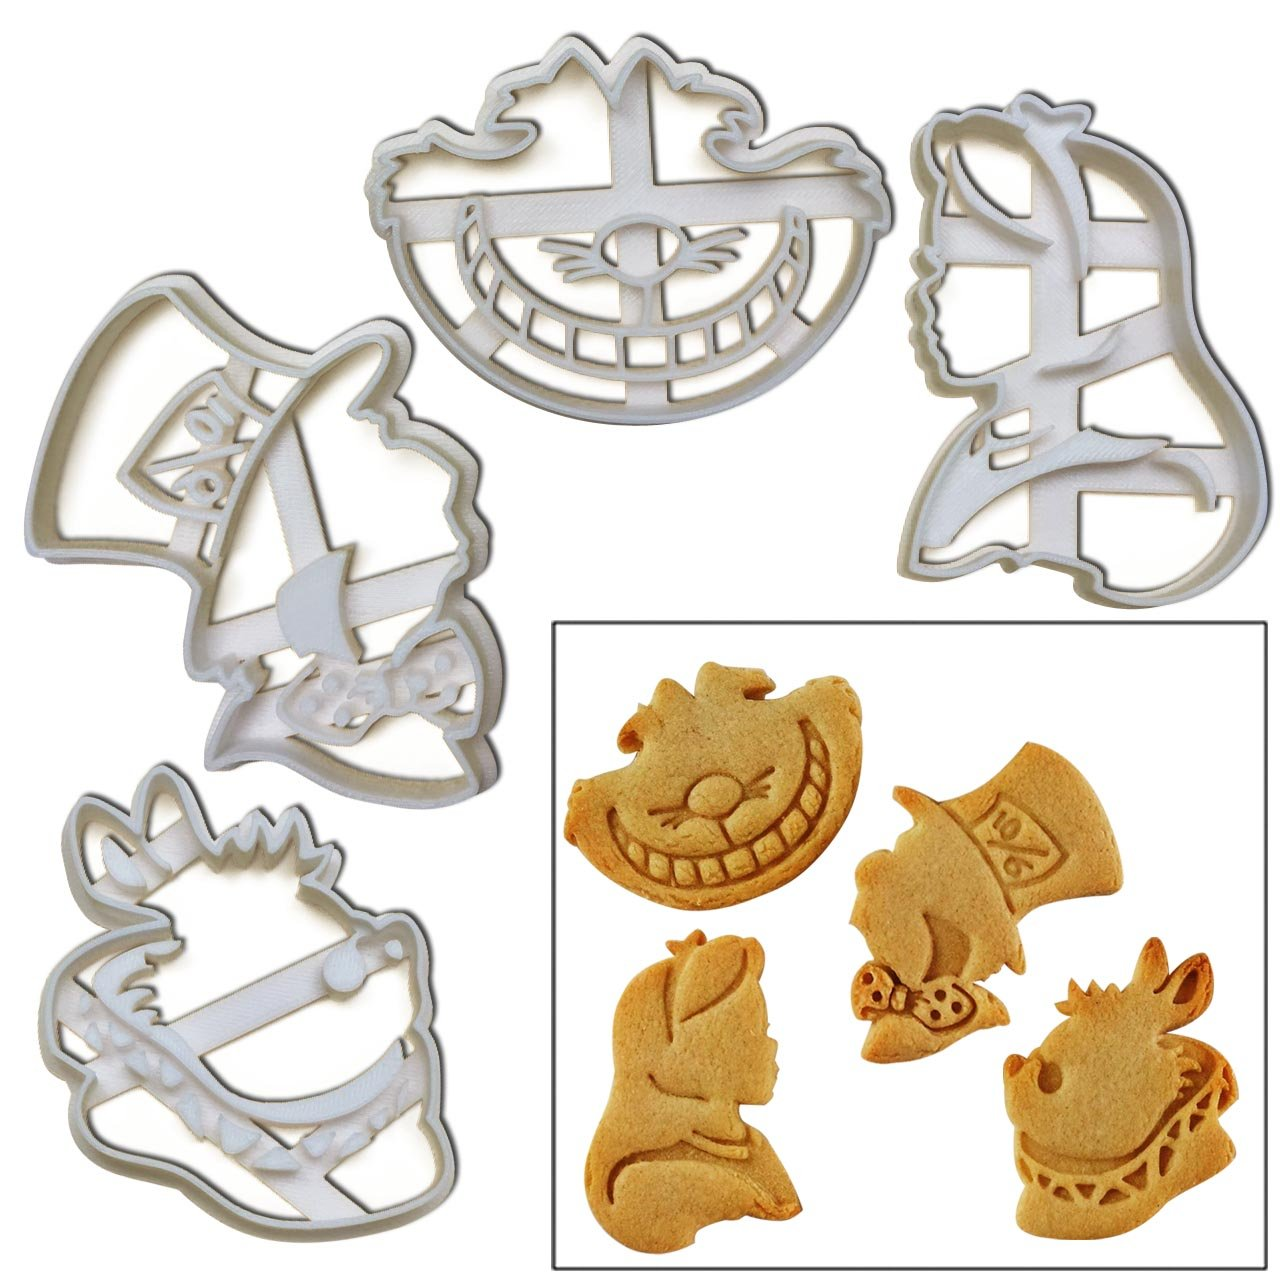 FULL SET of 4 Characters Cookie Cutters inspired by ''Alice's Adventures in Wonderland'' novel by Lewis Carroll, 4 pcs, Includes Alice, Mad Hatter, Cheshire, and White Rabbit characters